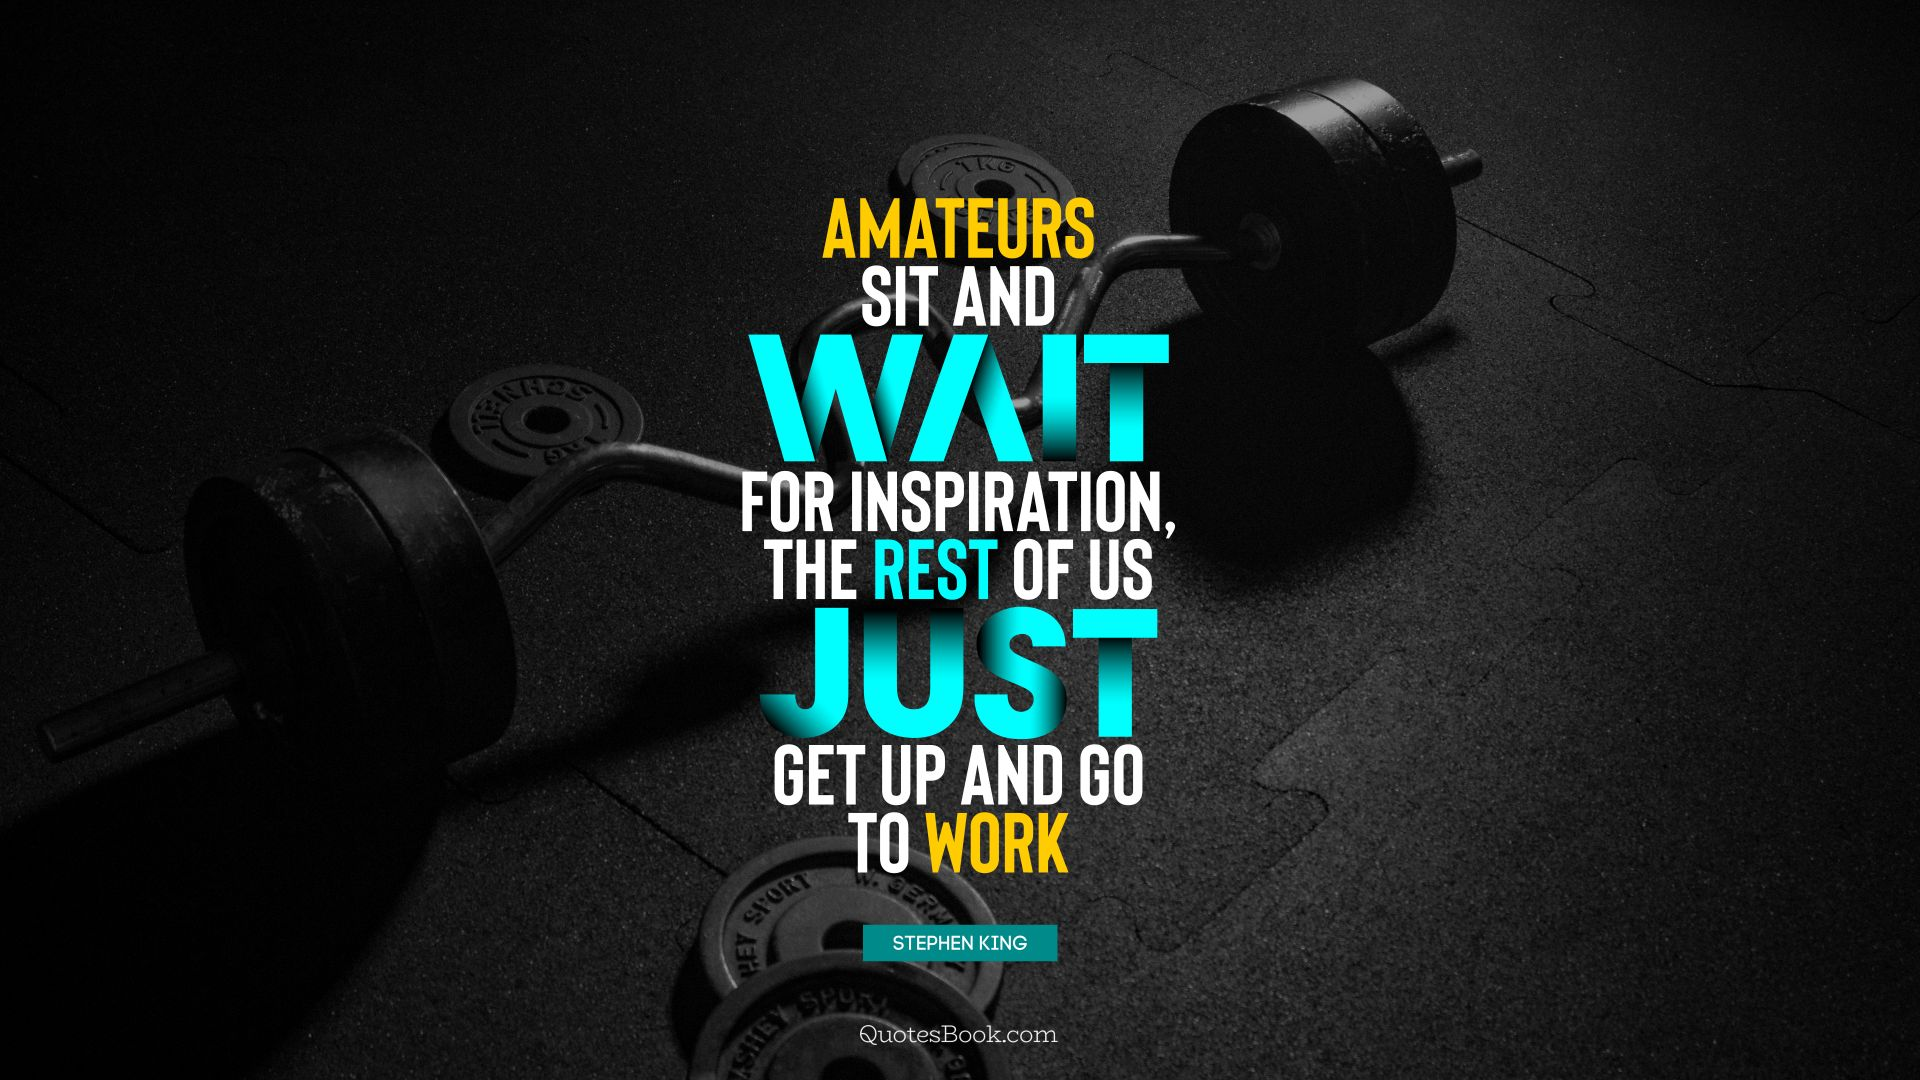 Amateurs sit and wait for inspiration, the rest of us just get up and go to work. - Quote by Stephen King